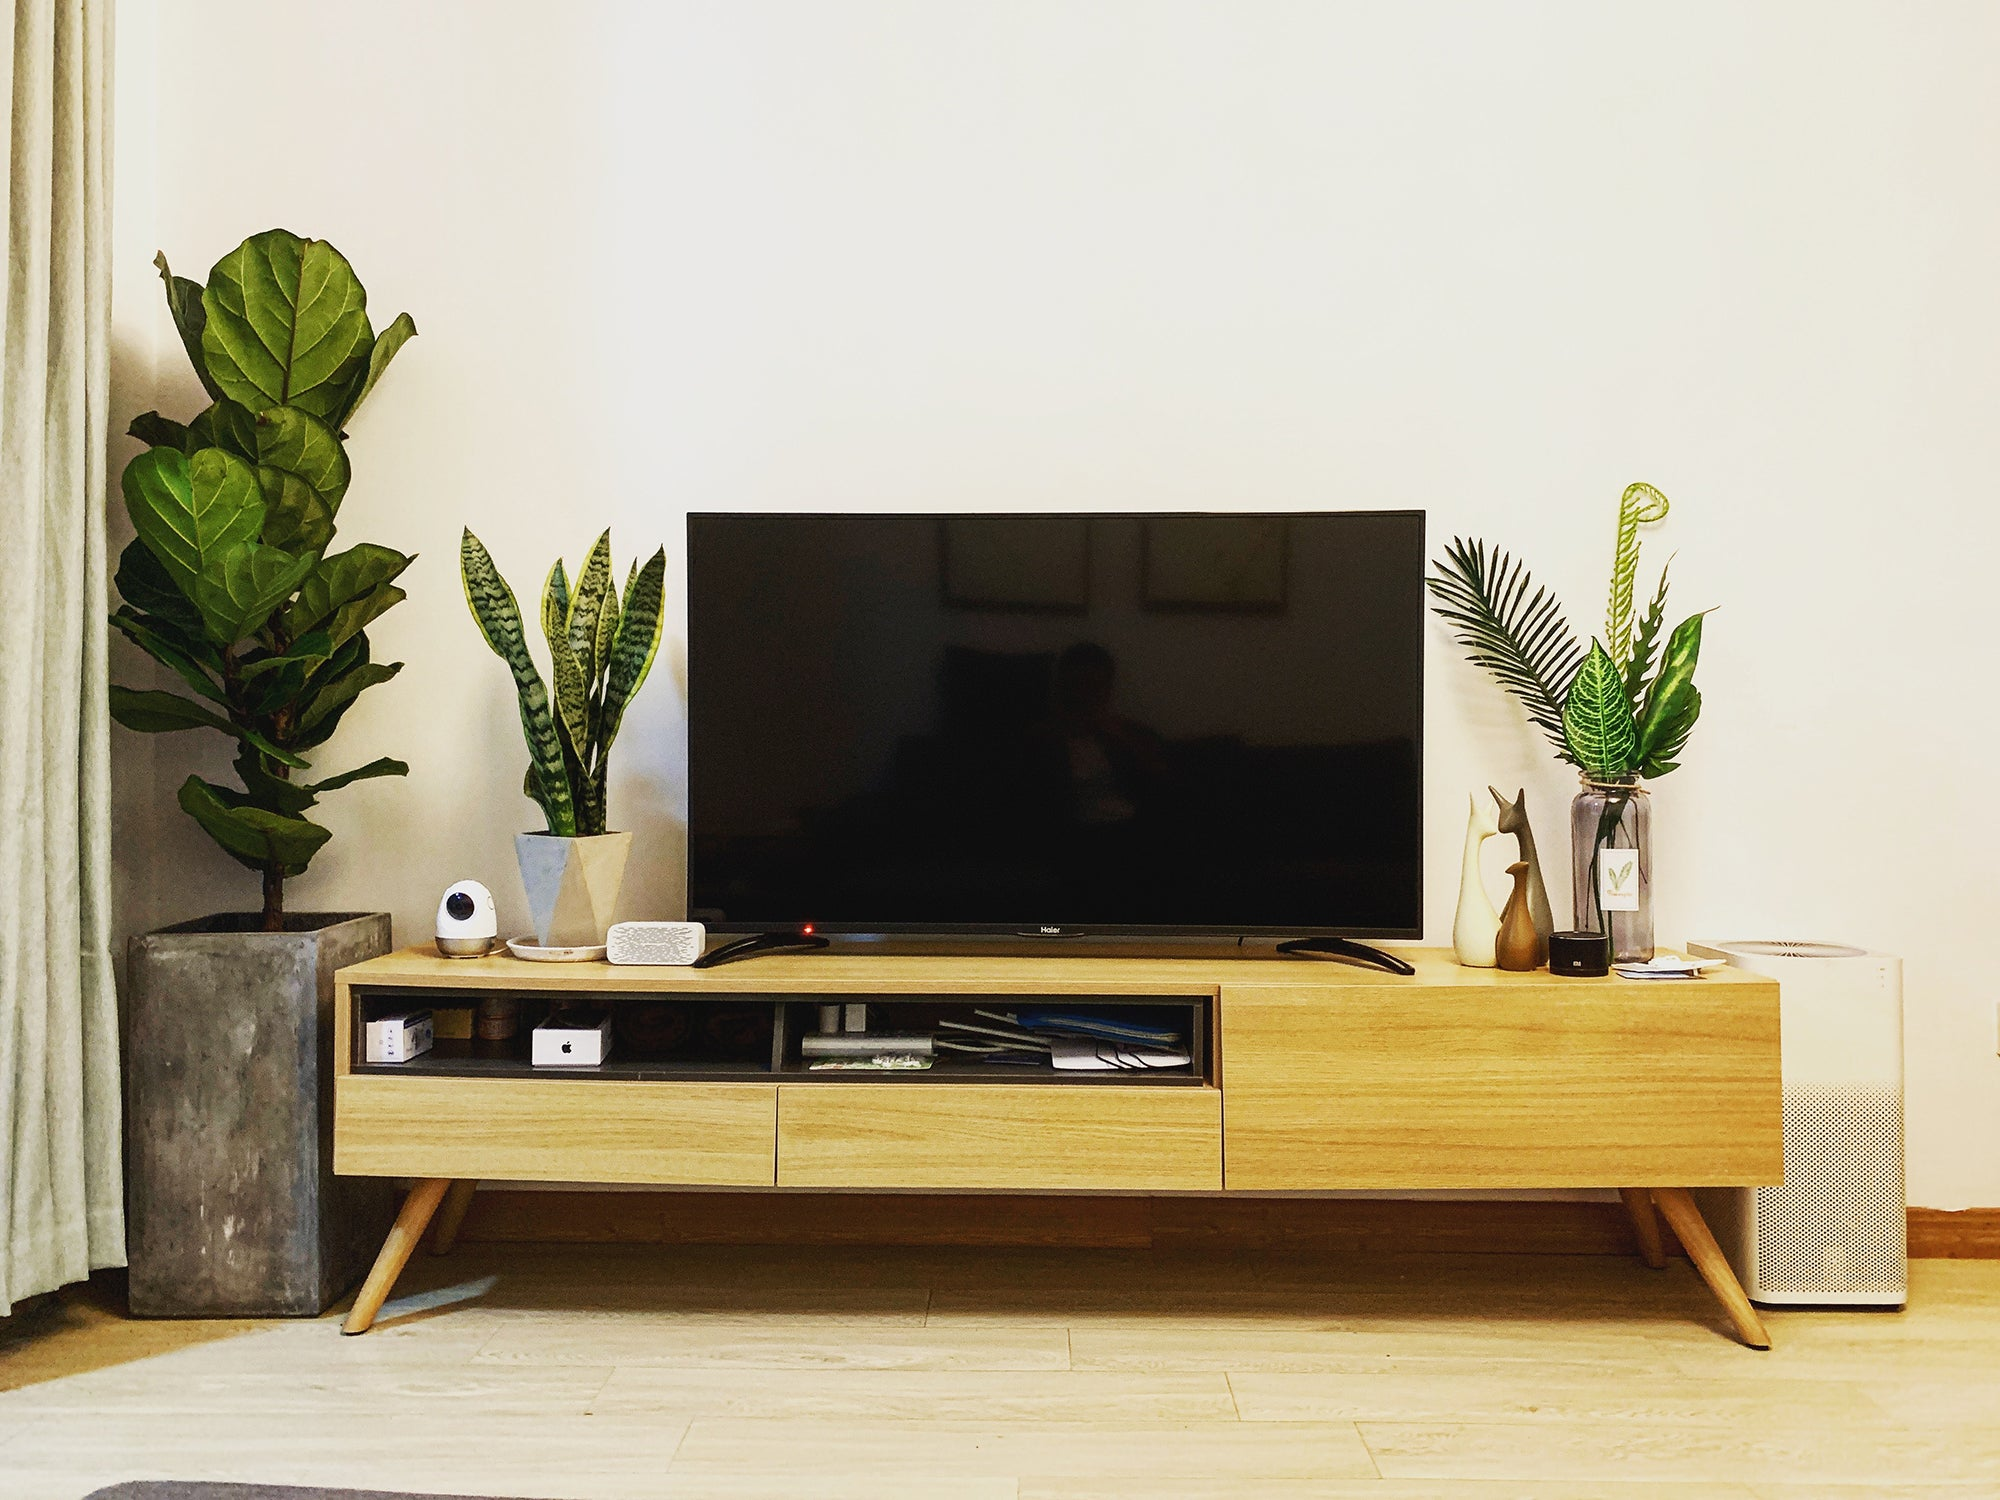 tv on a media console